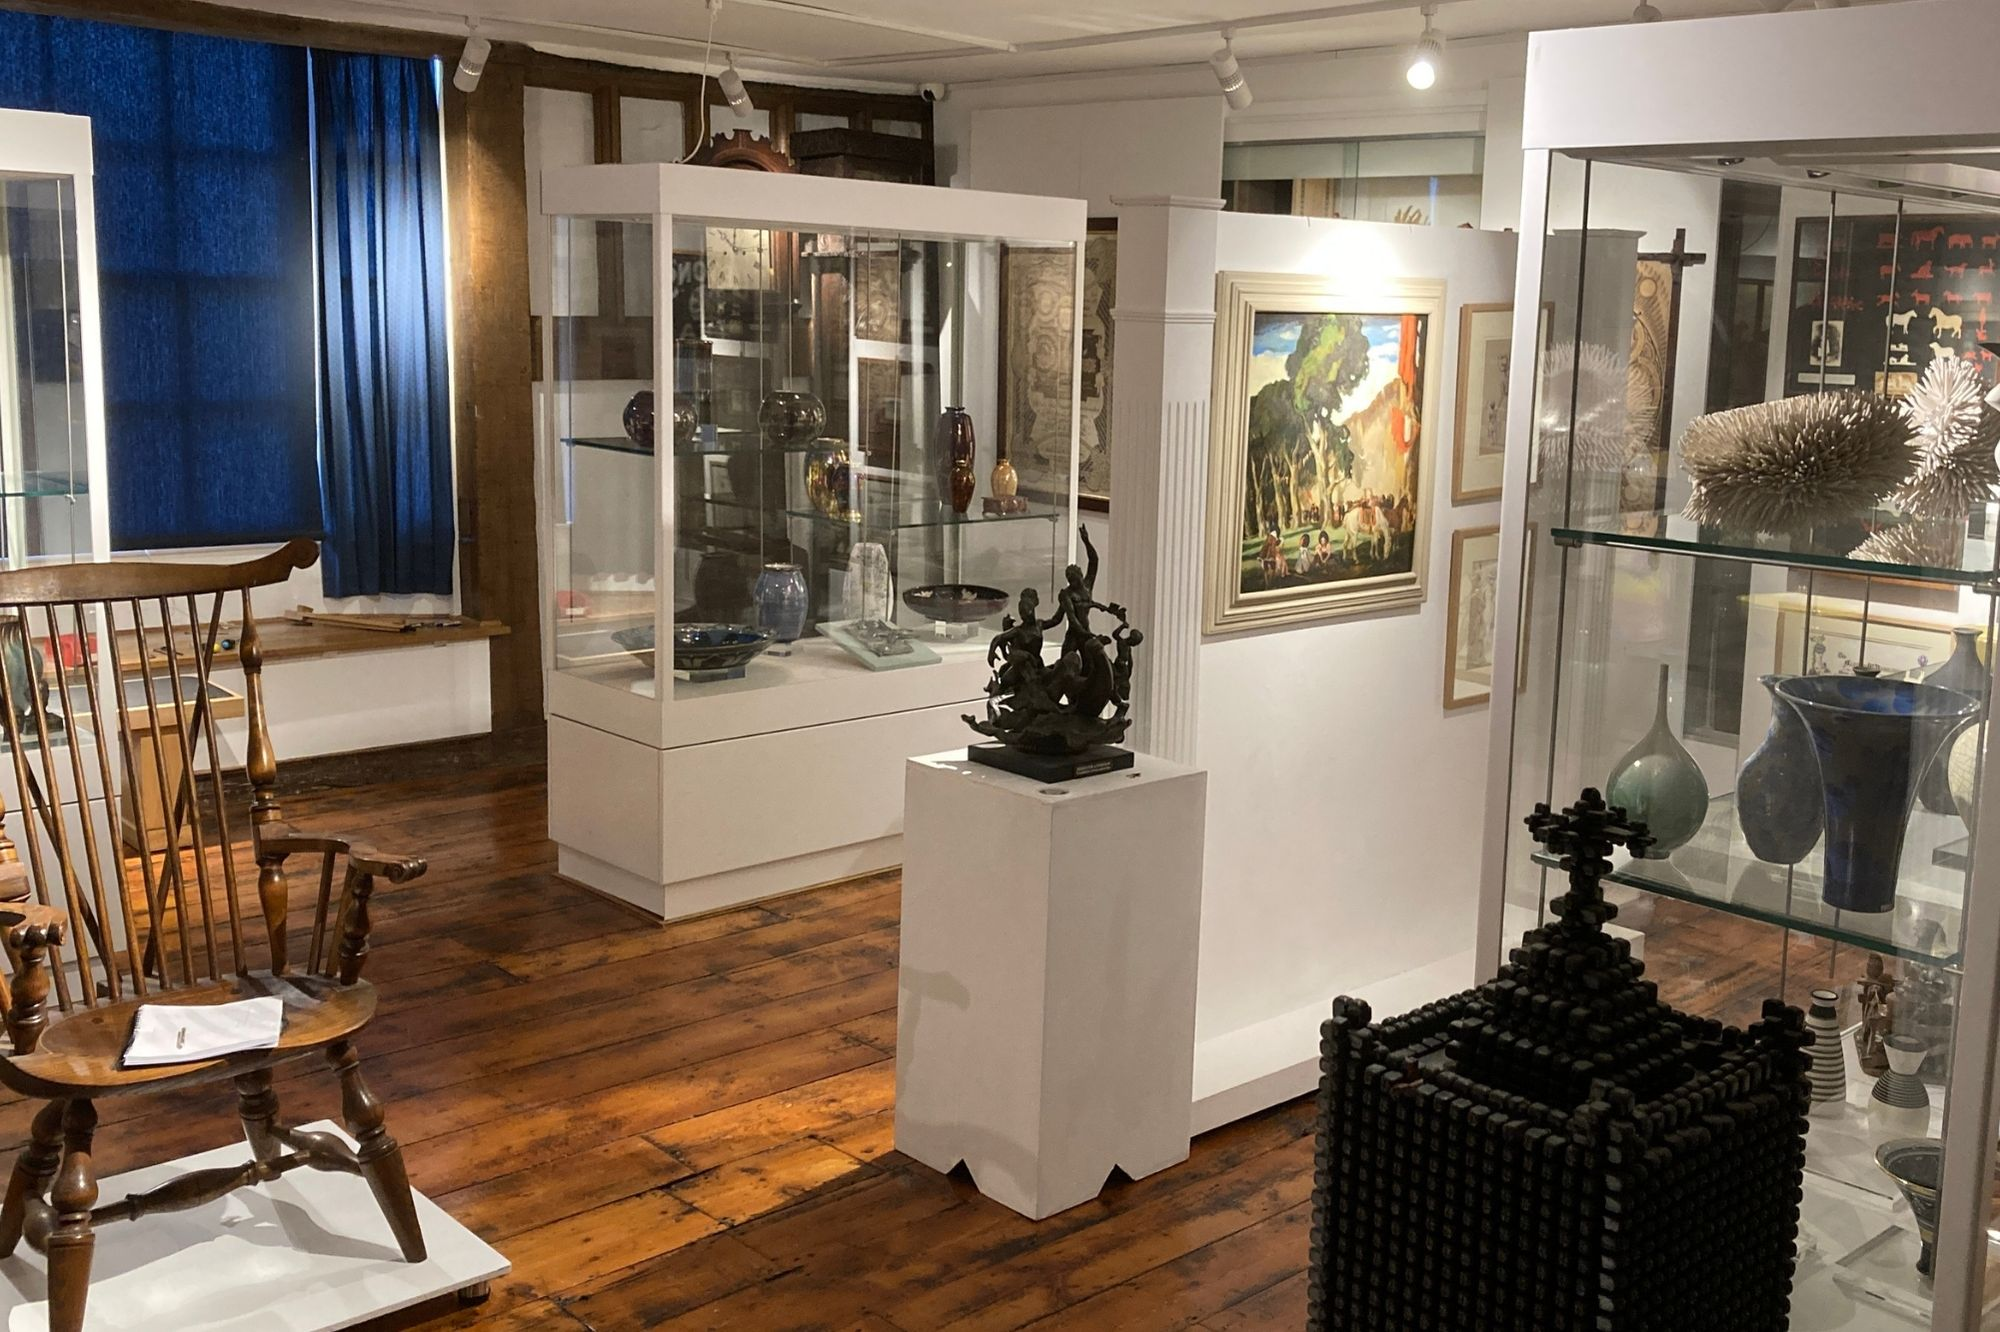 Gallery containing paintings and objects